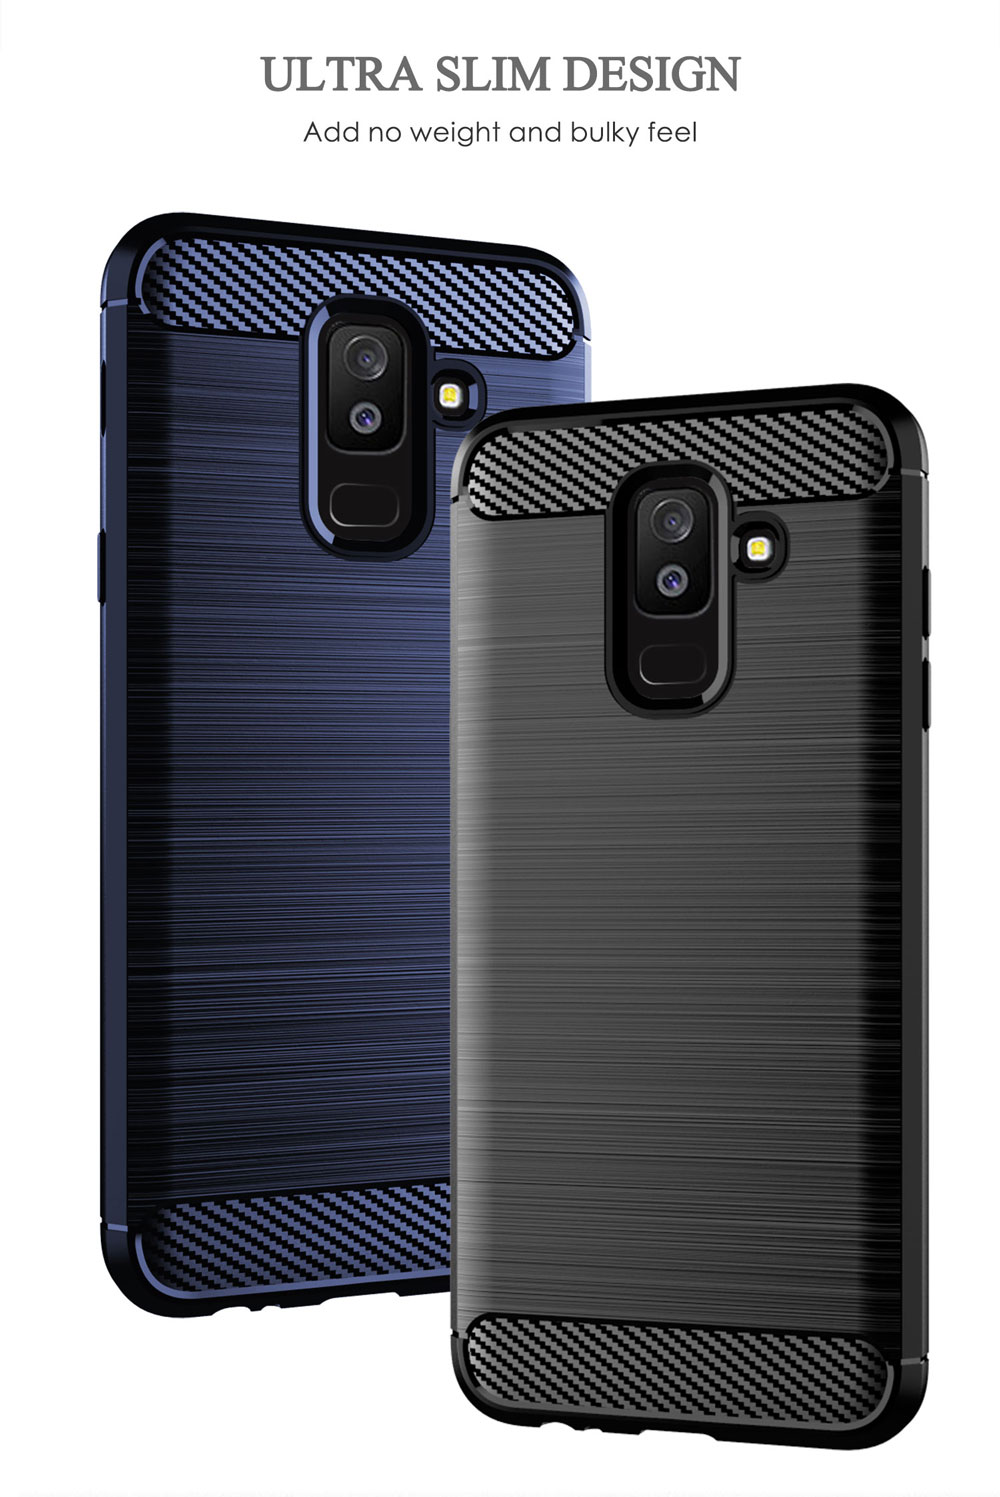 Image 4 - Carbon Soft Silicone Phone Case For Samsung Galaxy A6 Plus A6S 2018 Cover Bumper GalaxyA6 A6plus A62018 A6s2018 SM A600F A605F-in Half-wrapped Cases from Cellphones & Telecommunications